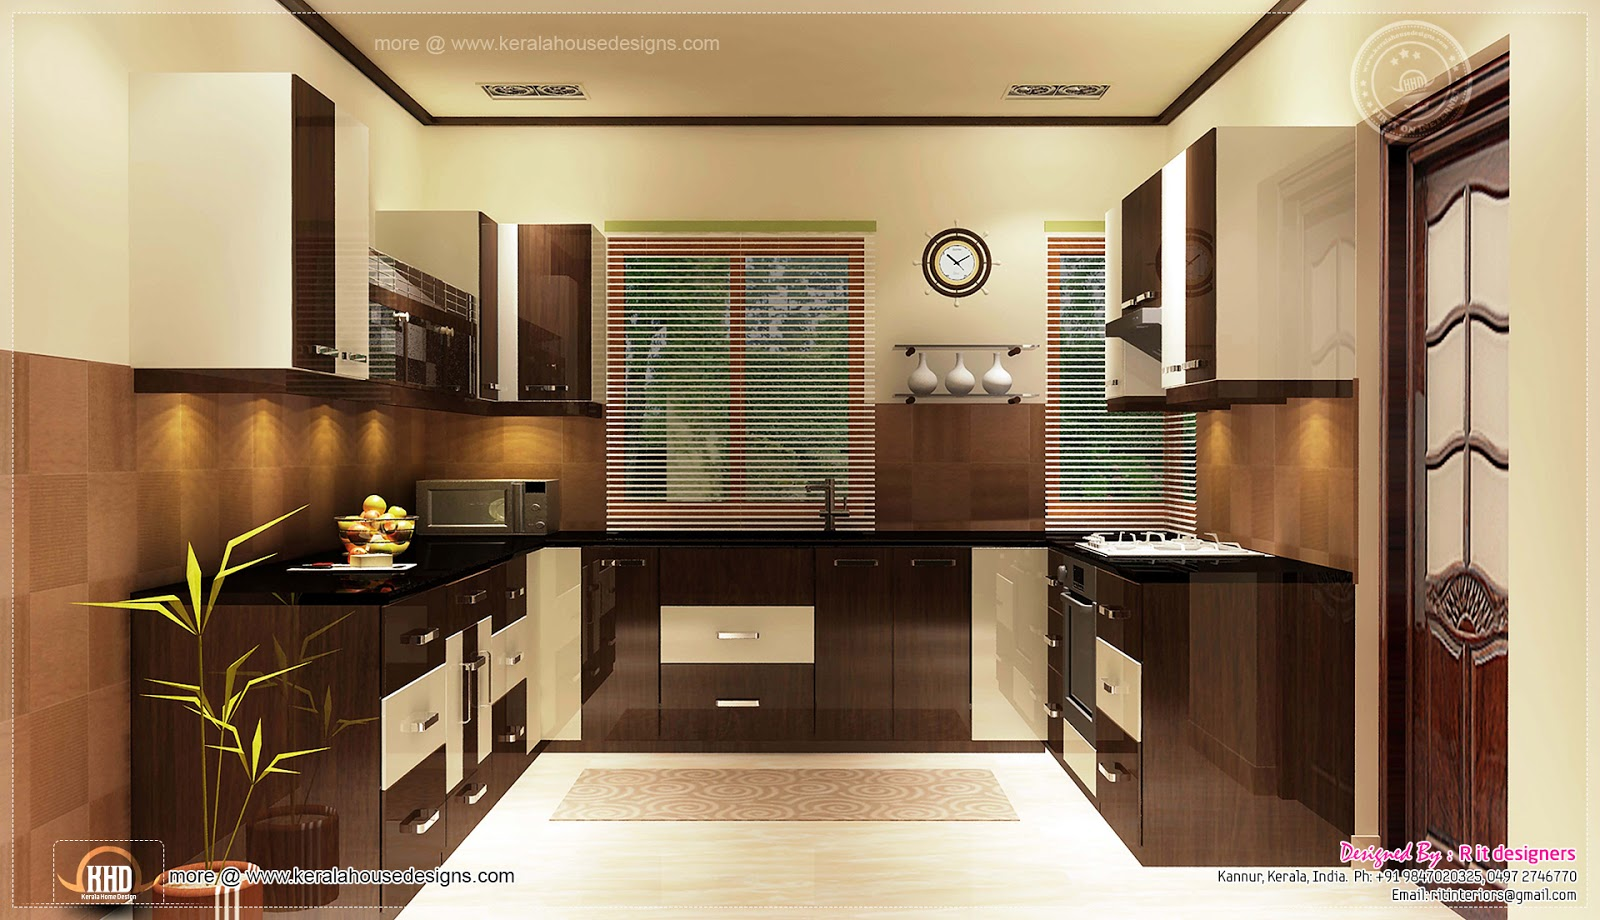 Home interior designs by rit designers kerala home - House interior design ideas pictures ...